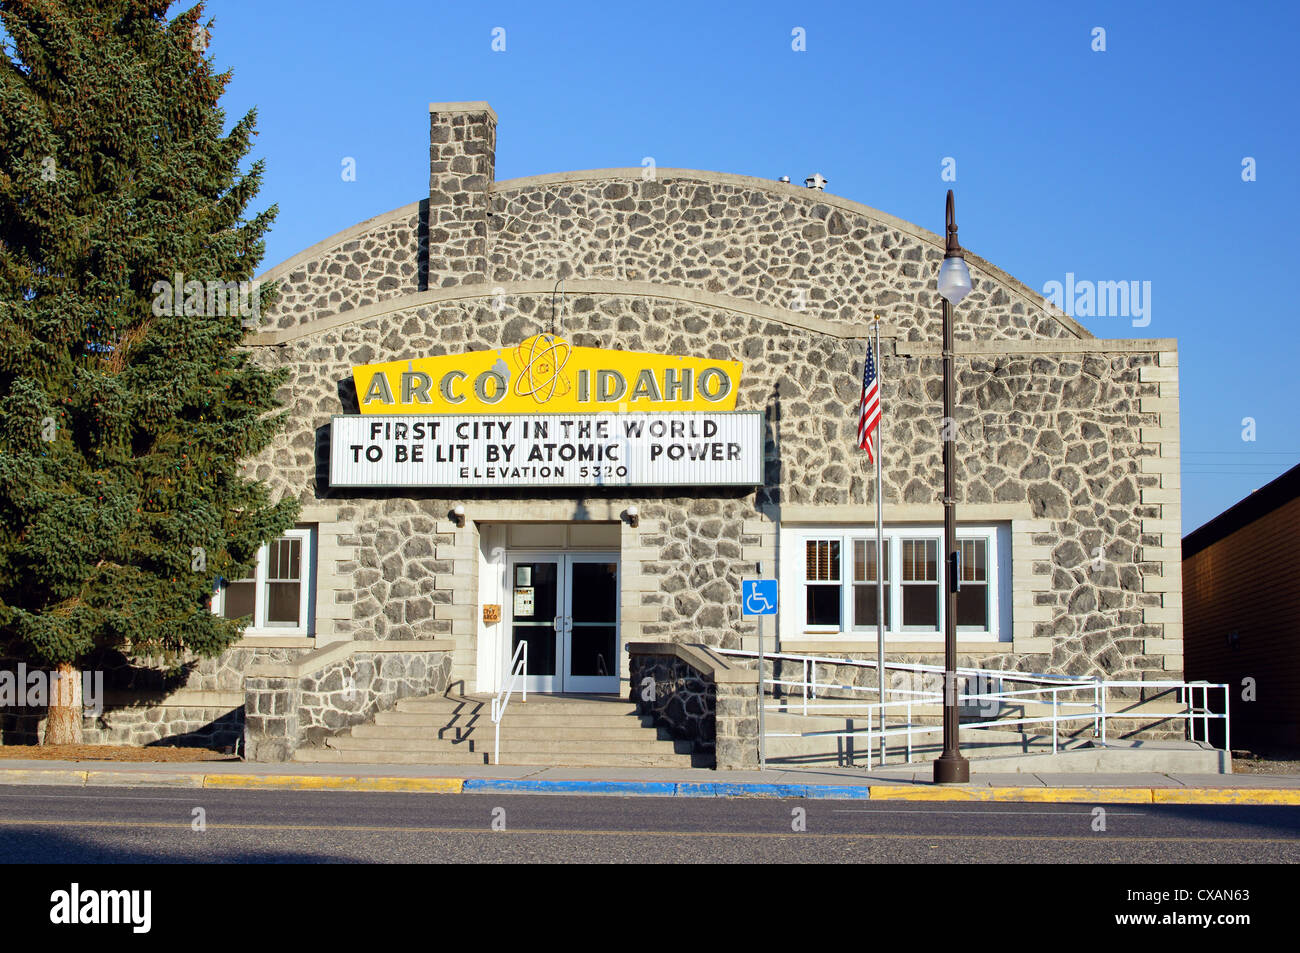 arco idaho id first city in world to be lit by atomic power sign building butte county united states big lost - Stock Image